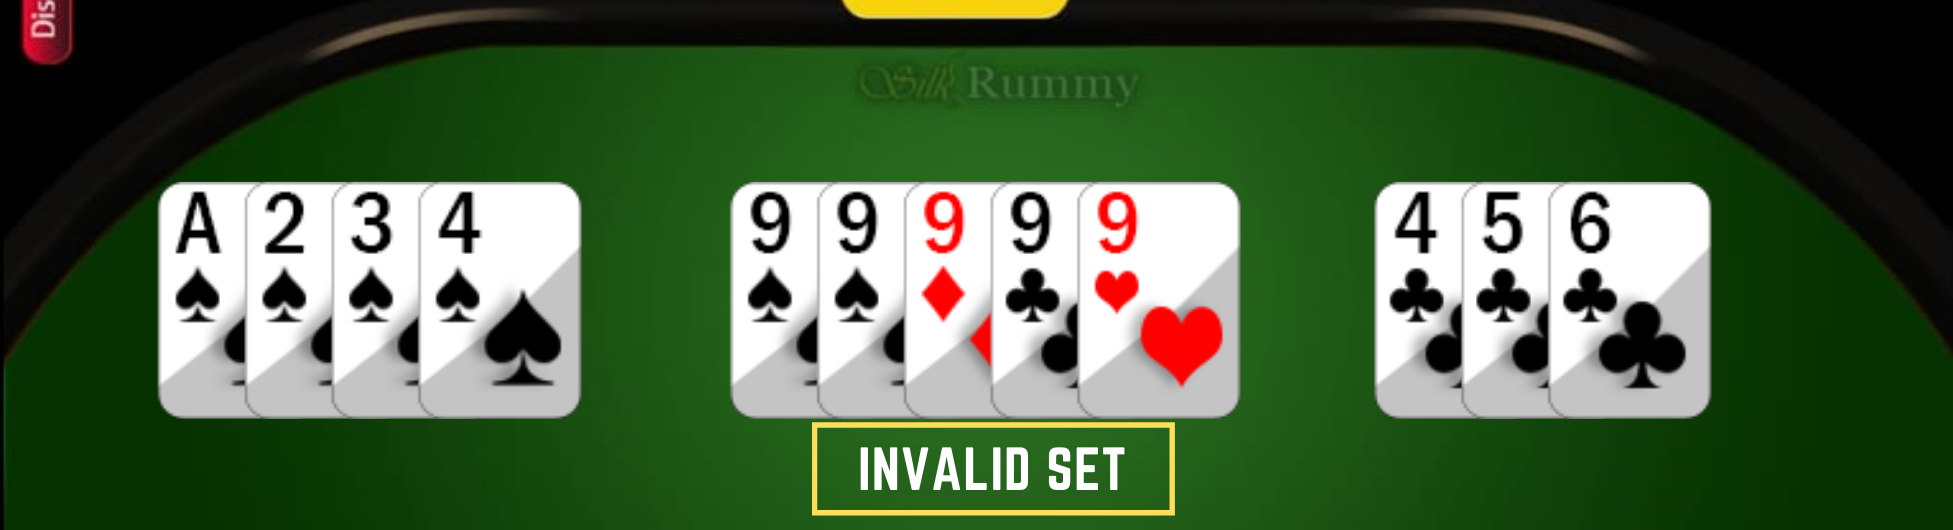 How to Play Rummy- Learn Rummy Rules- Rummy Wrong declaration